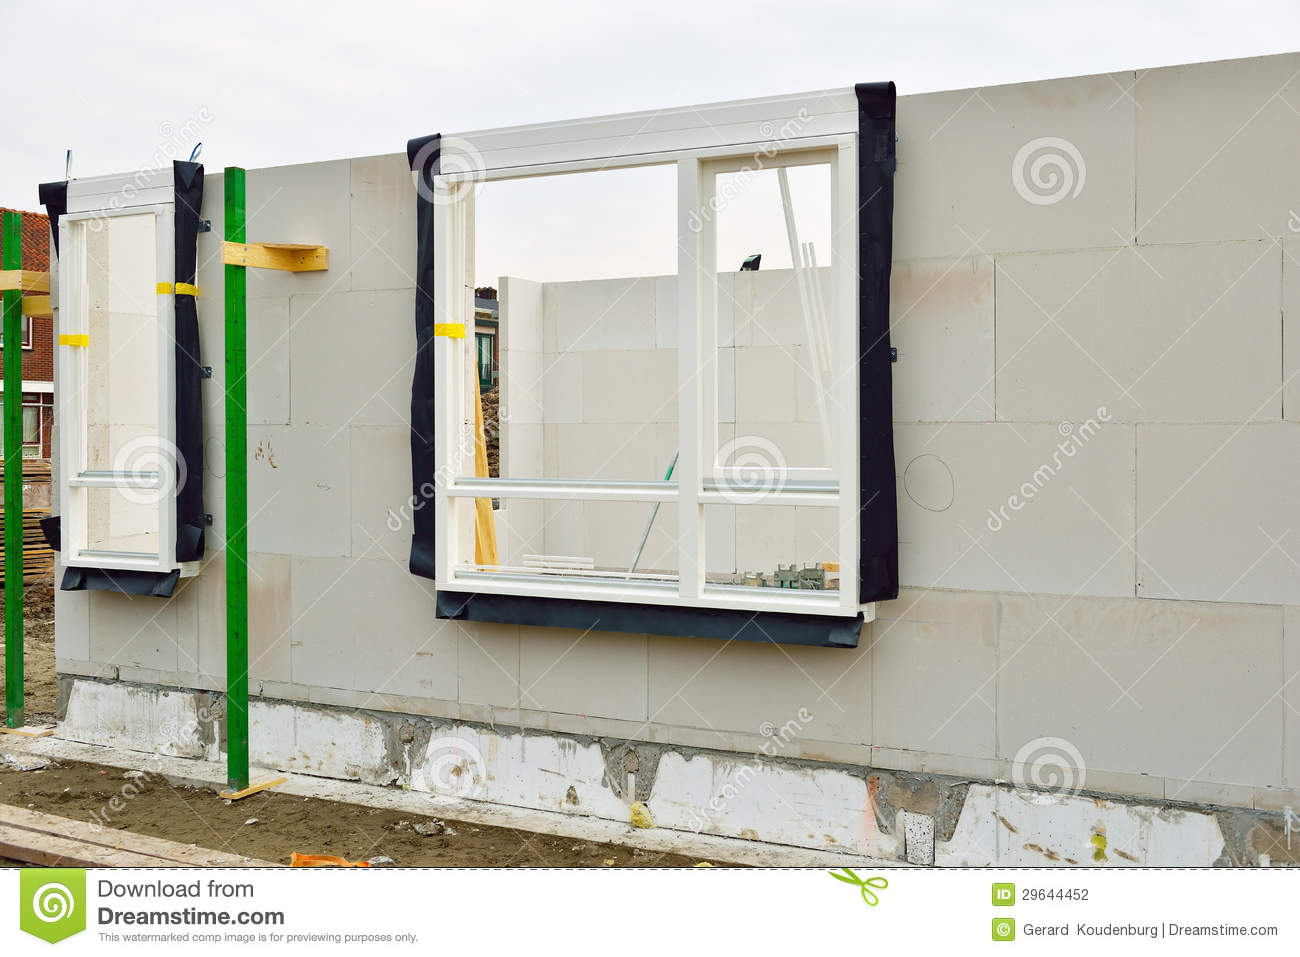 Building Site Of Houses With Window Frames Stock Photo - Image of ...